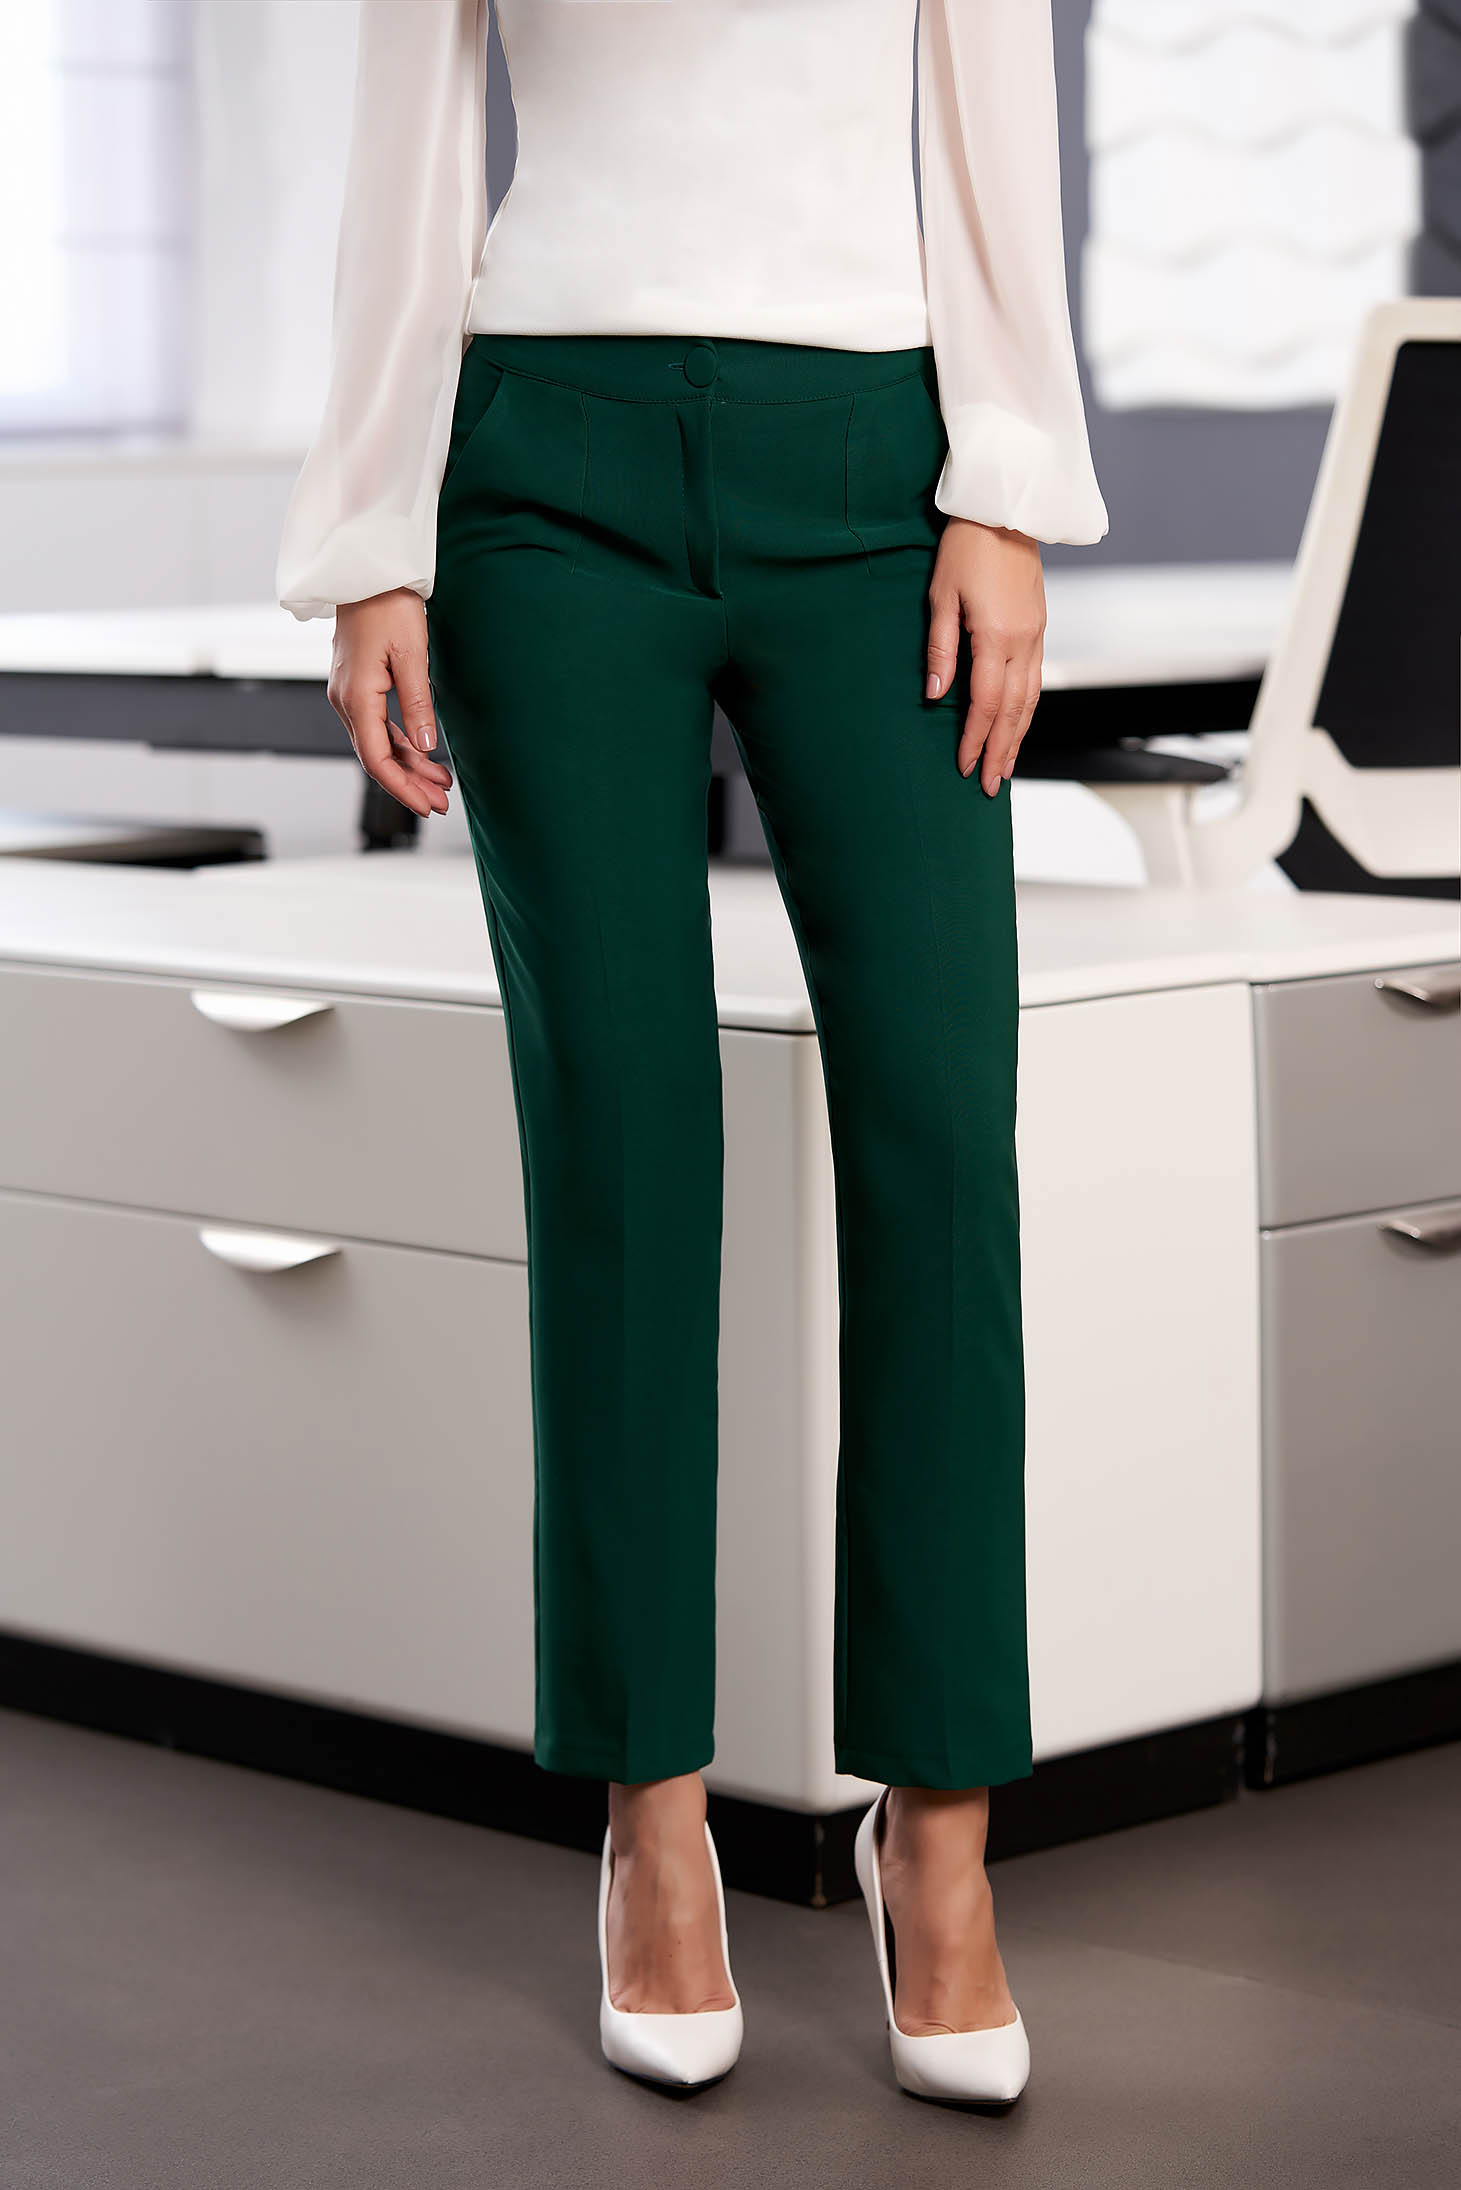 Trousers darkgreen office cloth medium waist straight